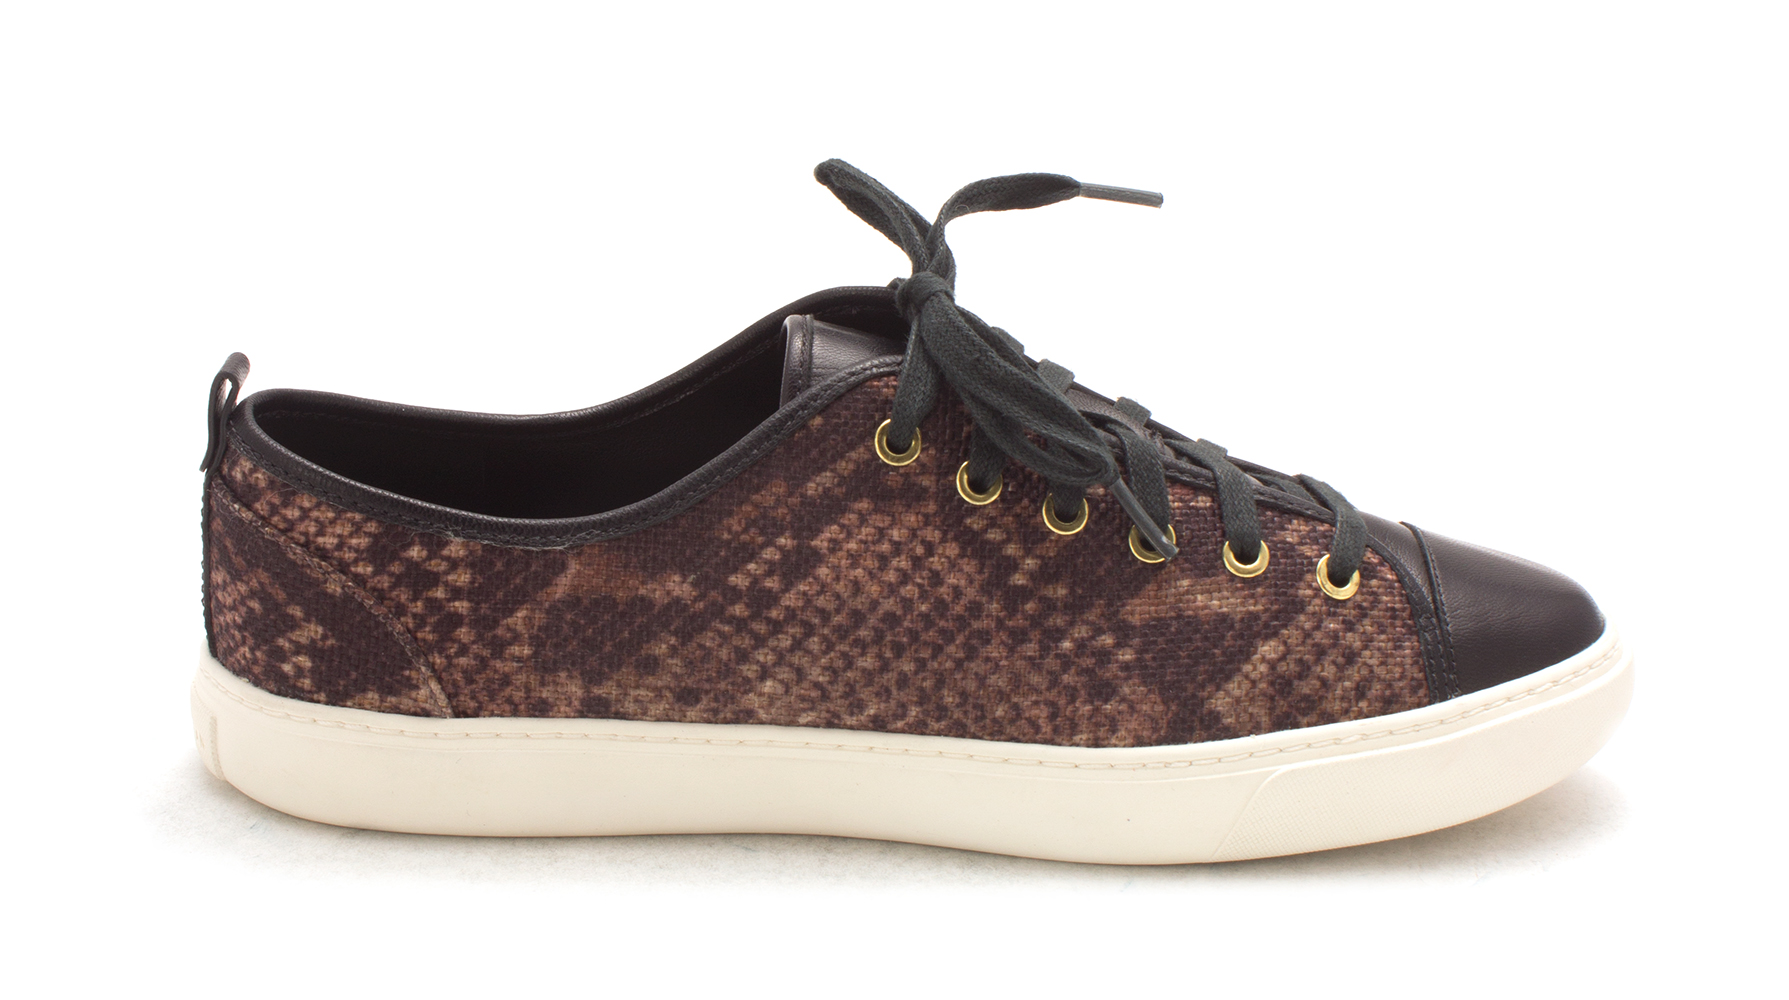 Cole Haan Womens Christysam Low Top Lace Up Fashion, Brown/Black, Size 6.0